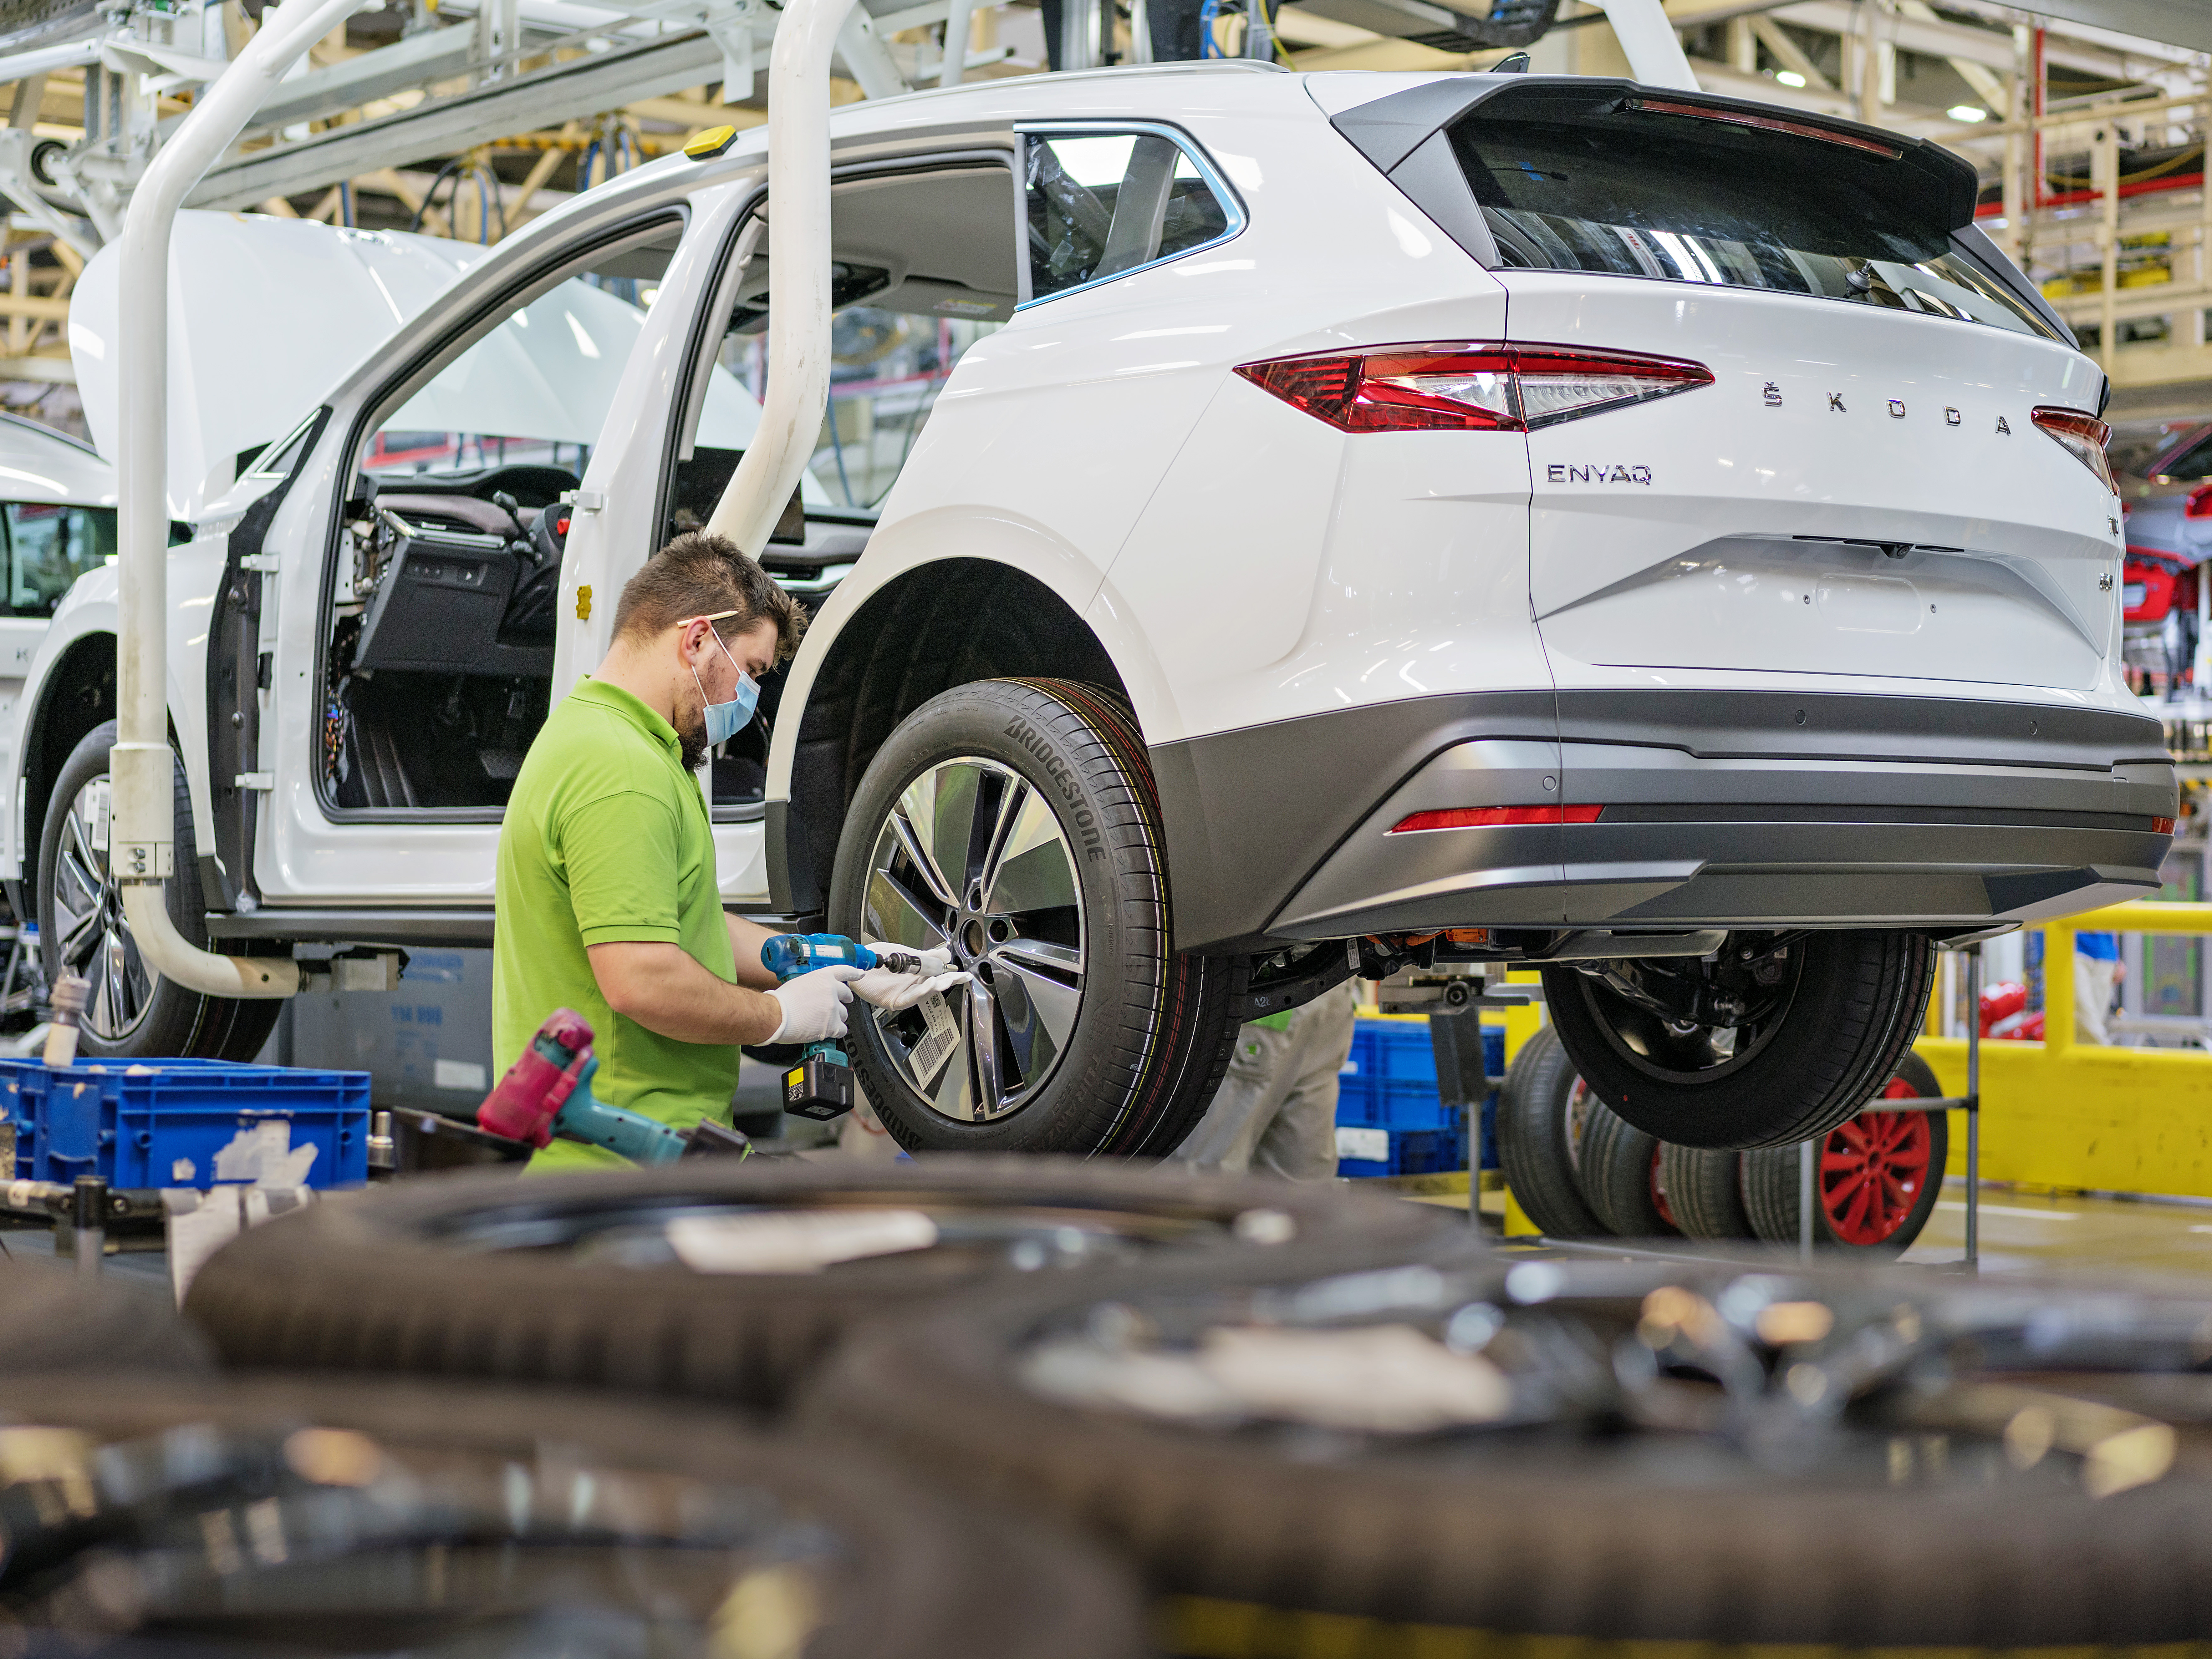 SKODA AUTO launches series production of the ENYAQ iV at its main plant in Mladá Boleslav - Image 1